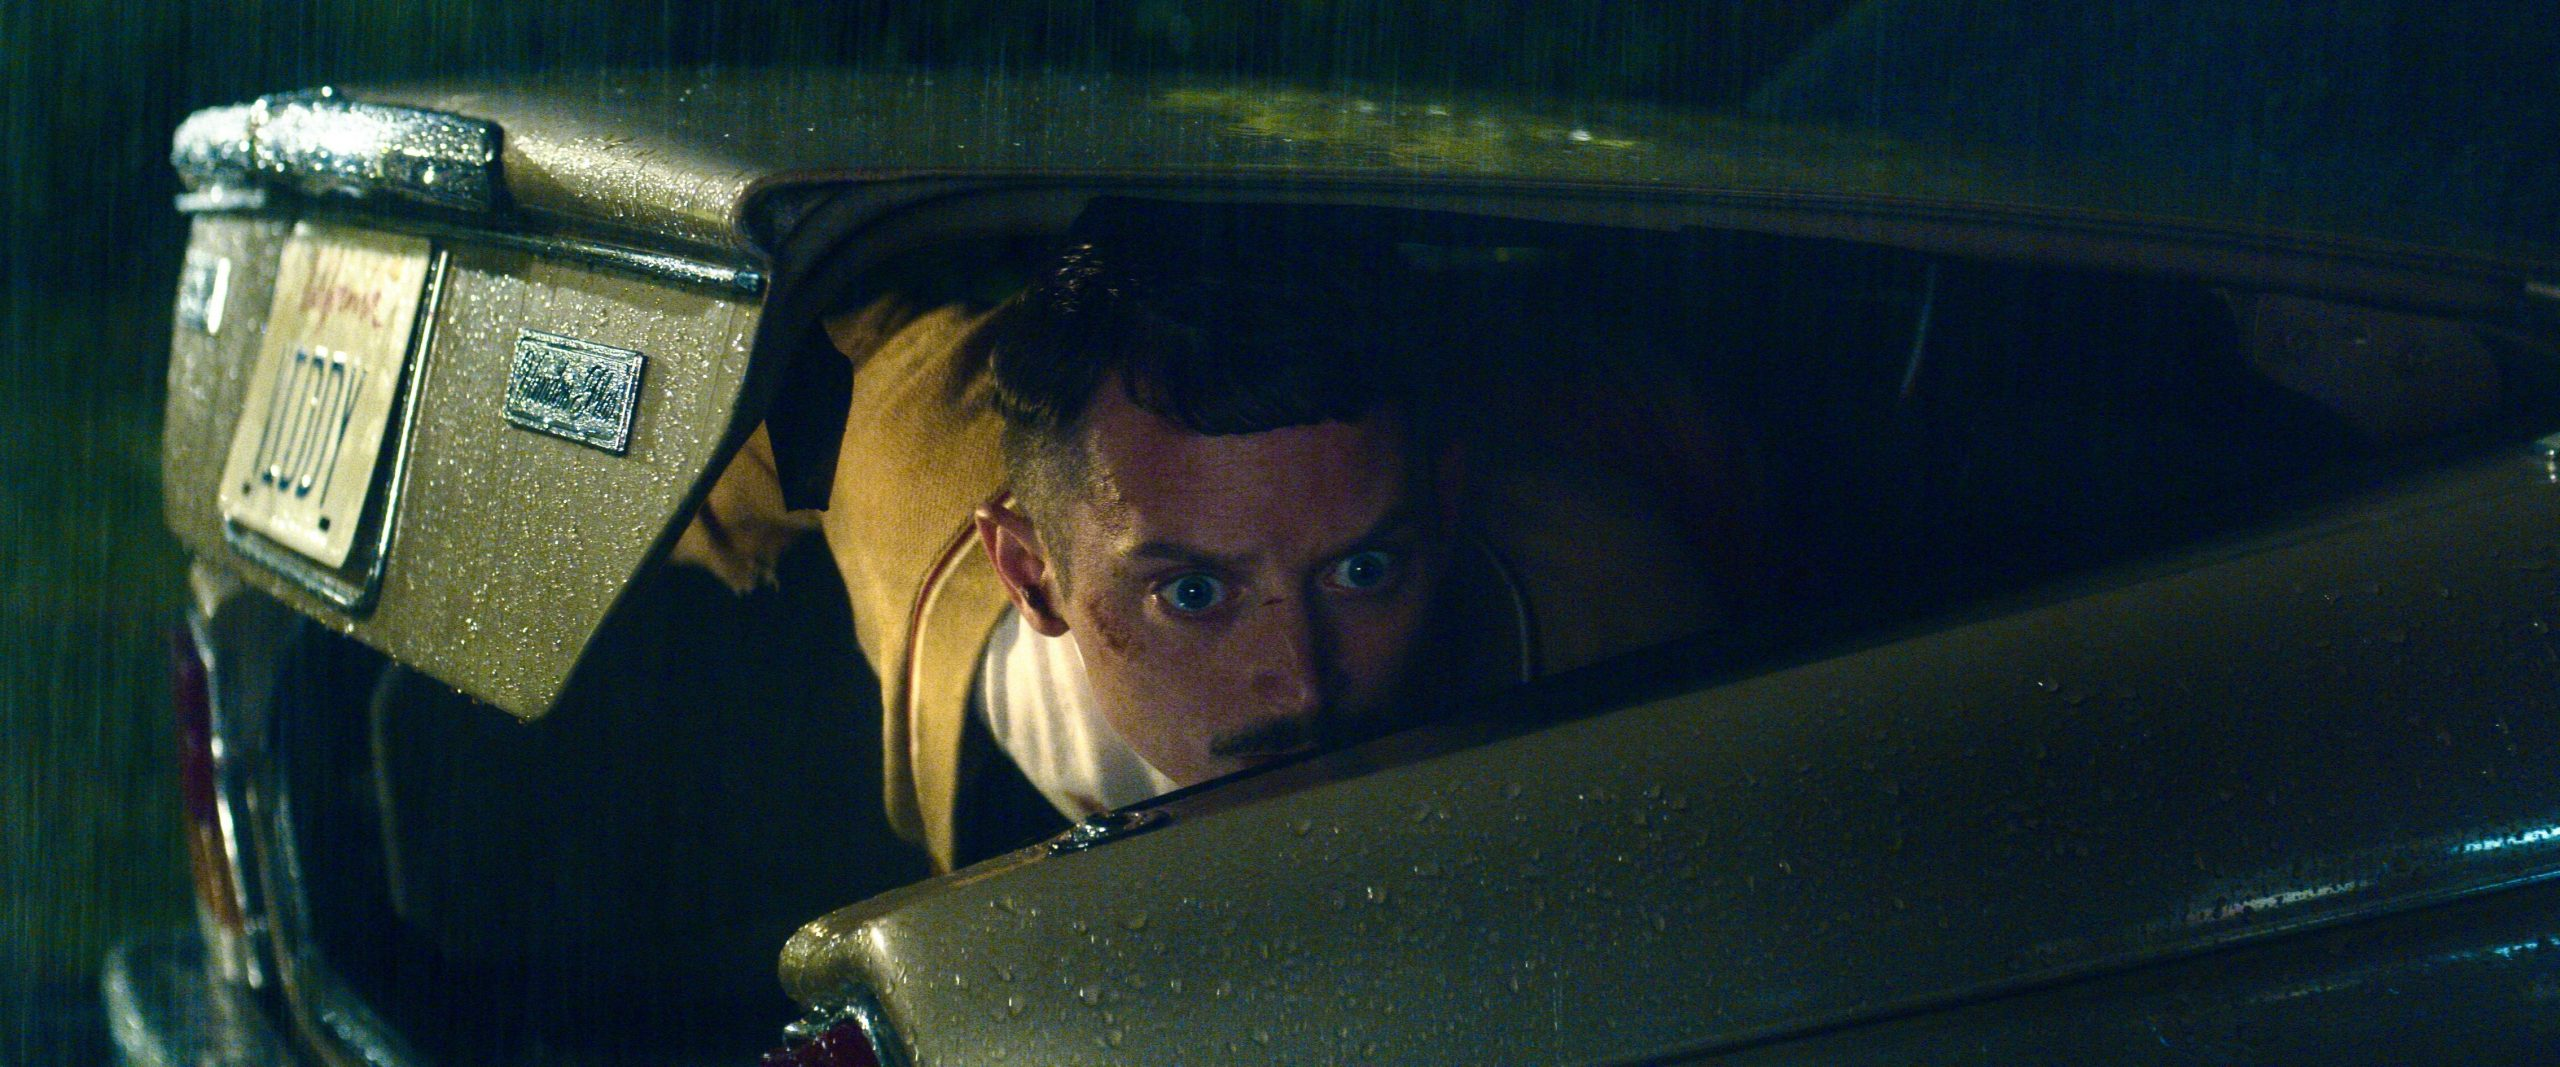 [News] New Clip Features Elijah Wood in COME TO DADDY